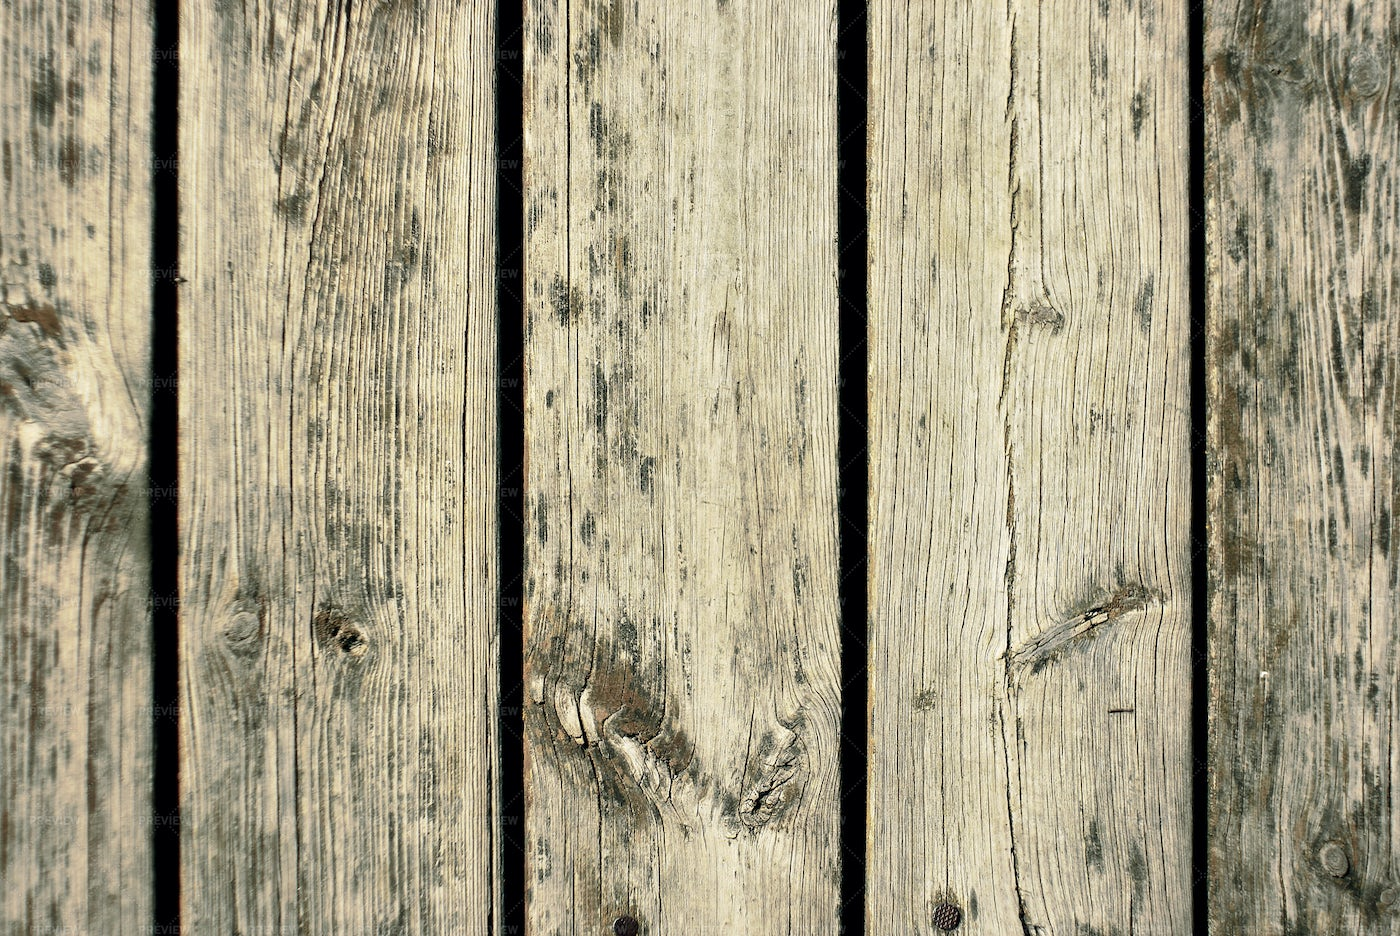 Old Wooden Background: Stock Photos